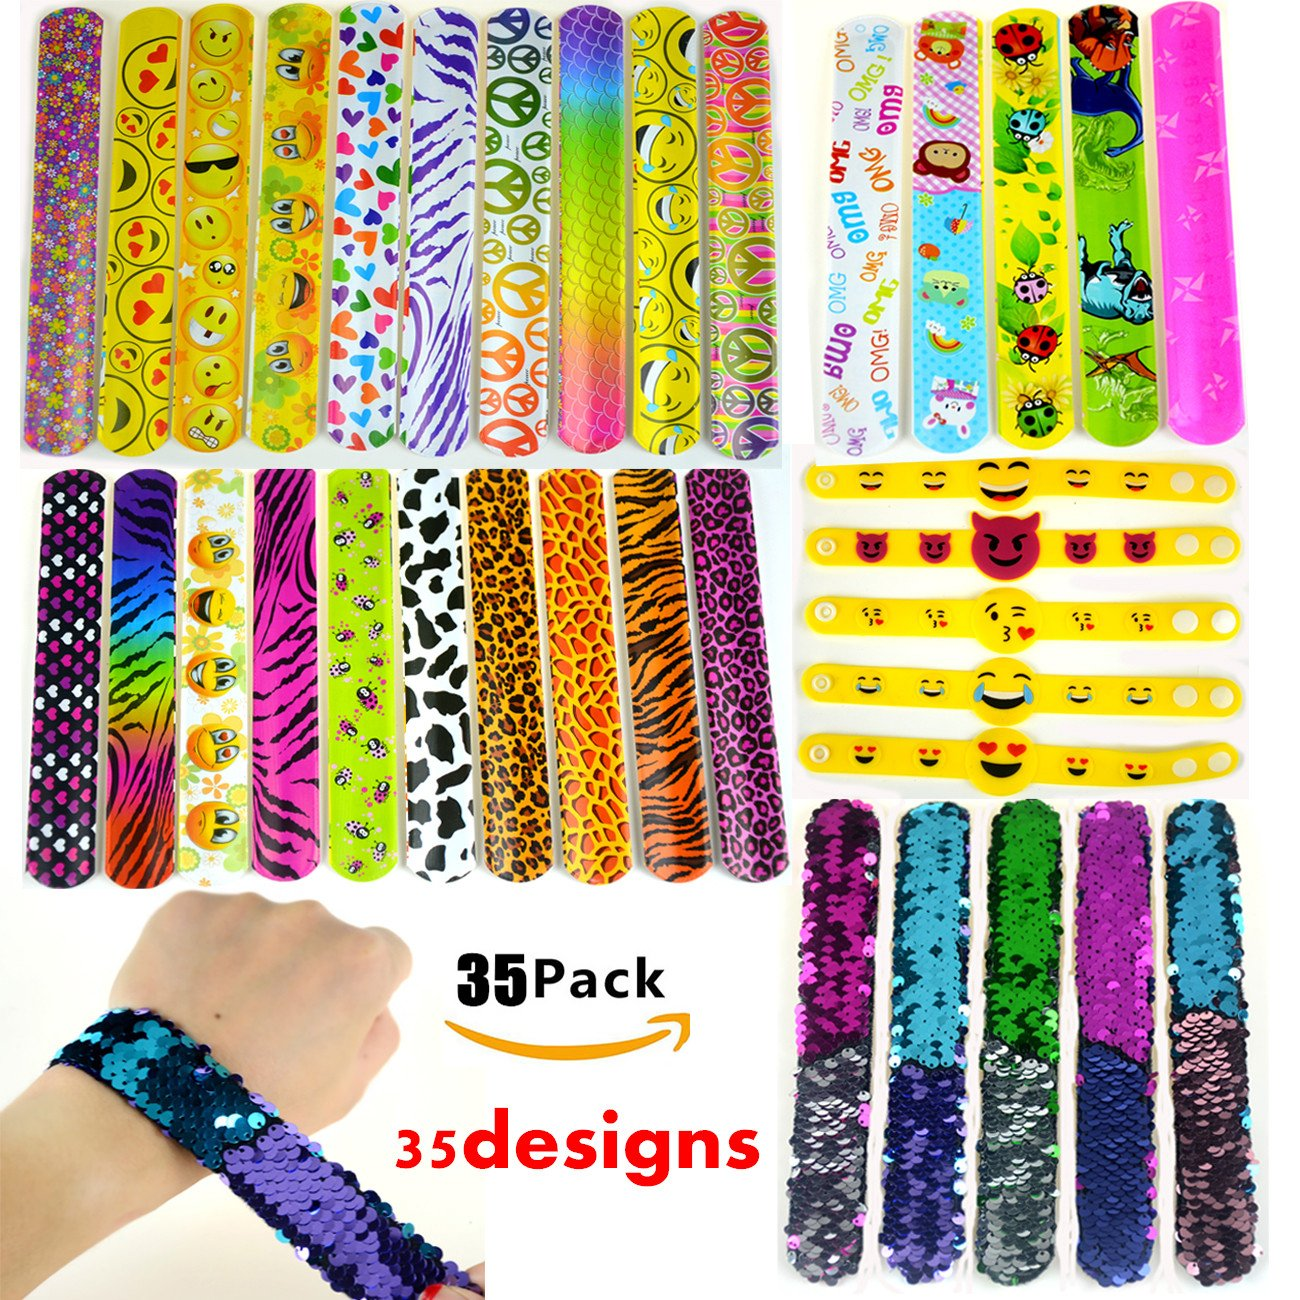 Slap Bracelets, 35 PCS Birthday Party Favors Gifts (25 Designs Slap Bracelets + 5 Reversible Sequin Mermaid Bracelets + 5 Silicone Emoji Bracelets), Charming Wristband for Kids and Adults. by JACHAM (Image #1)